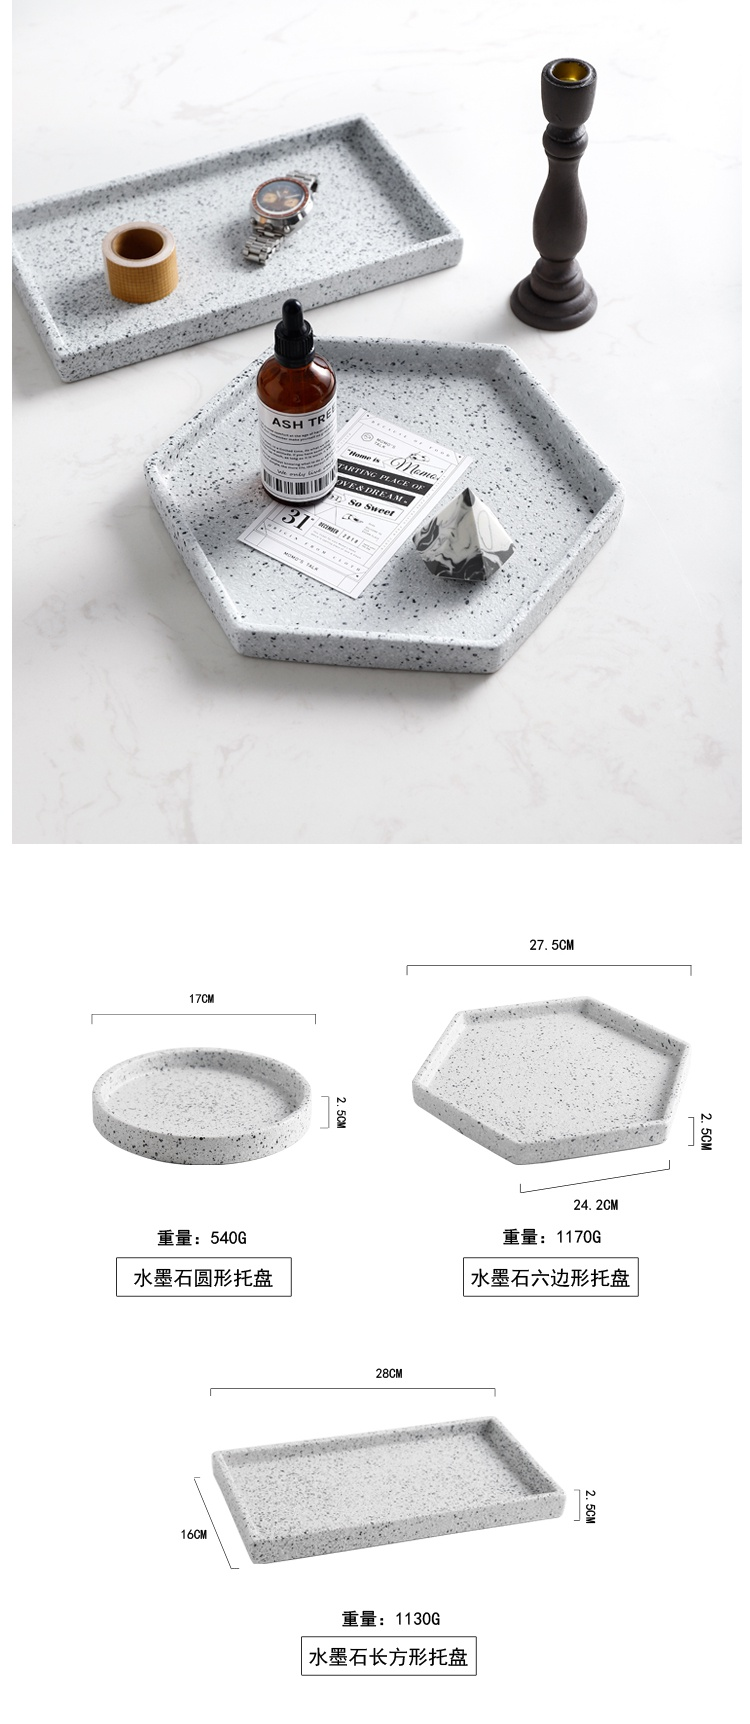 Western food steak terrazzo ceramic plate plate photo tray was first adorn article posed the Nordic household hexagonal plate plate